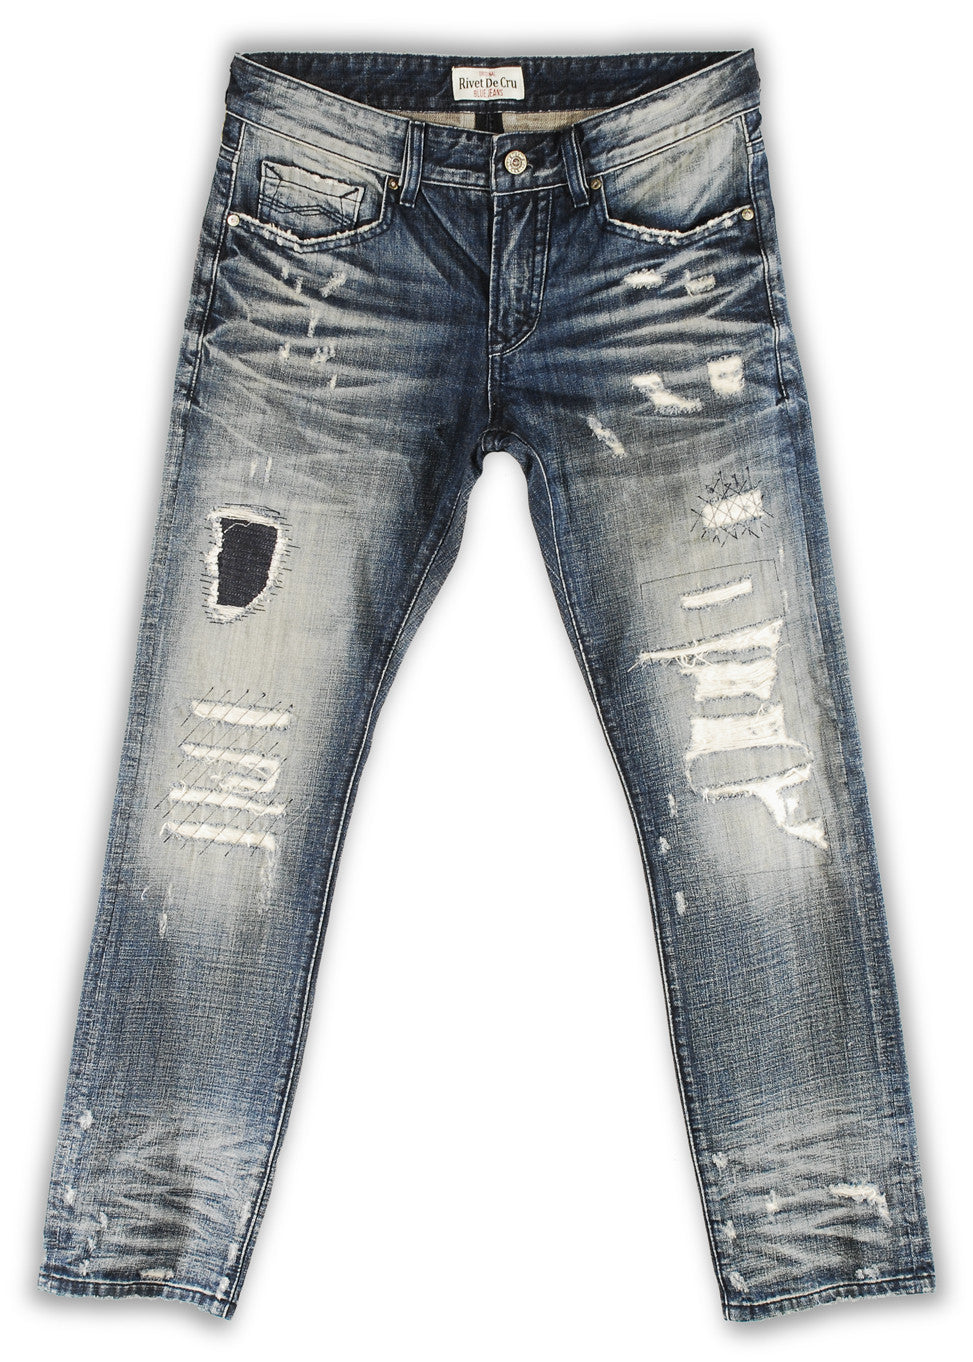 162-022M Stone Wash Blue Jeans - Rivet De Cru Jeans - Premium Denim - Mens Fashion - Mens Clothing - Mens Jeans - Mens Denim - 1